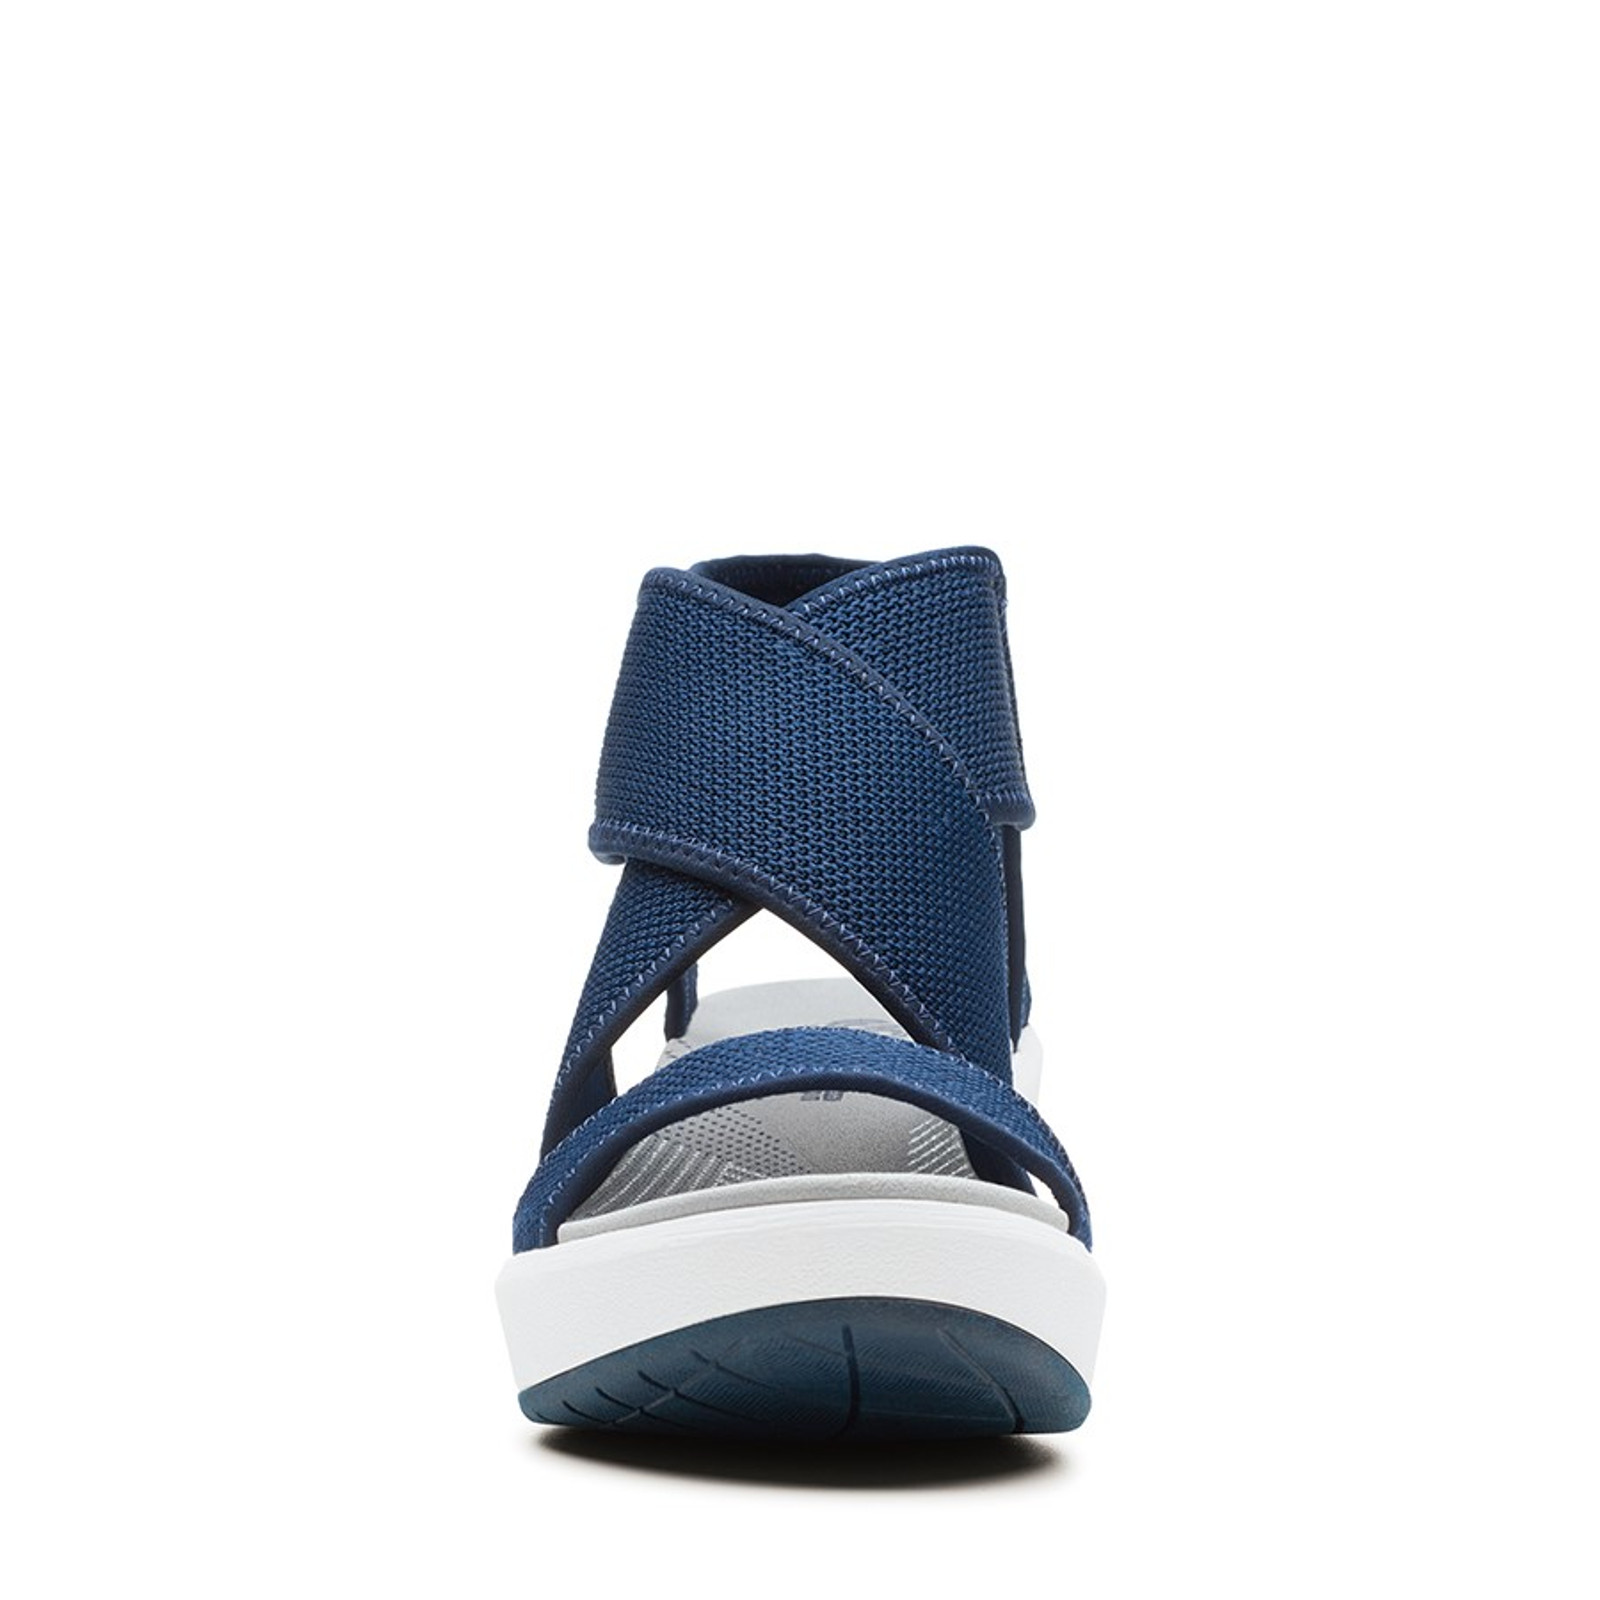 Clarks Womens STEP CALI PALM Navy Textile Knit